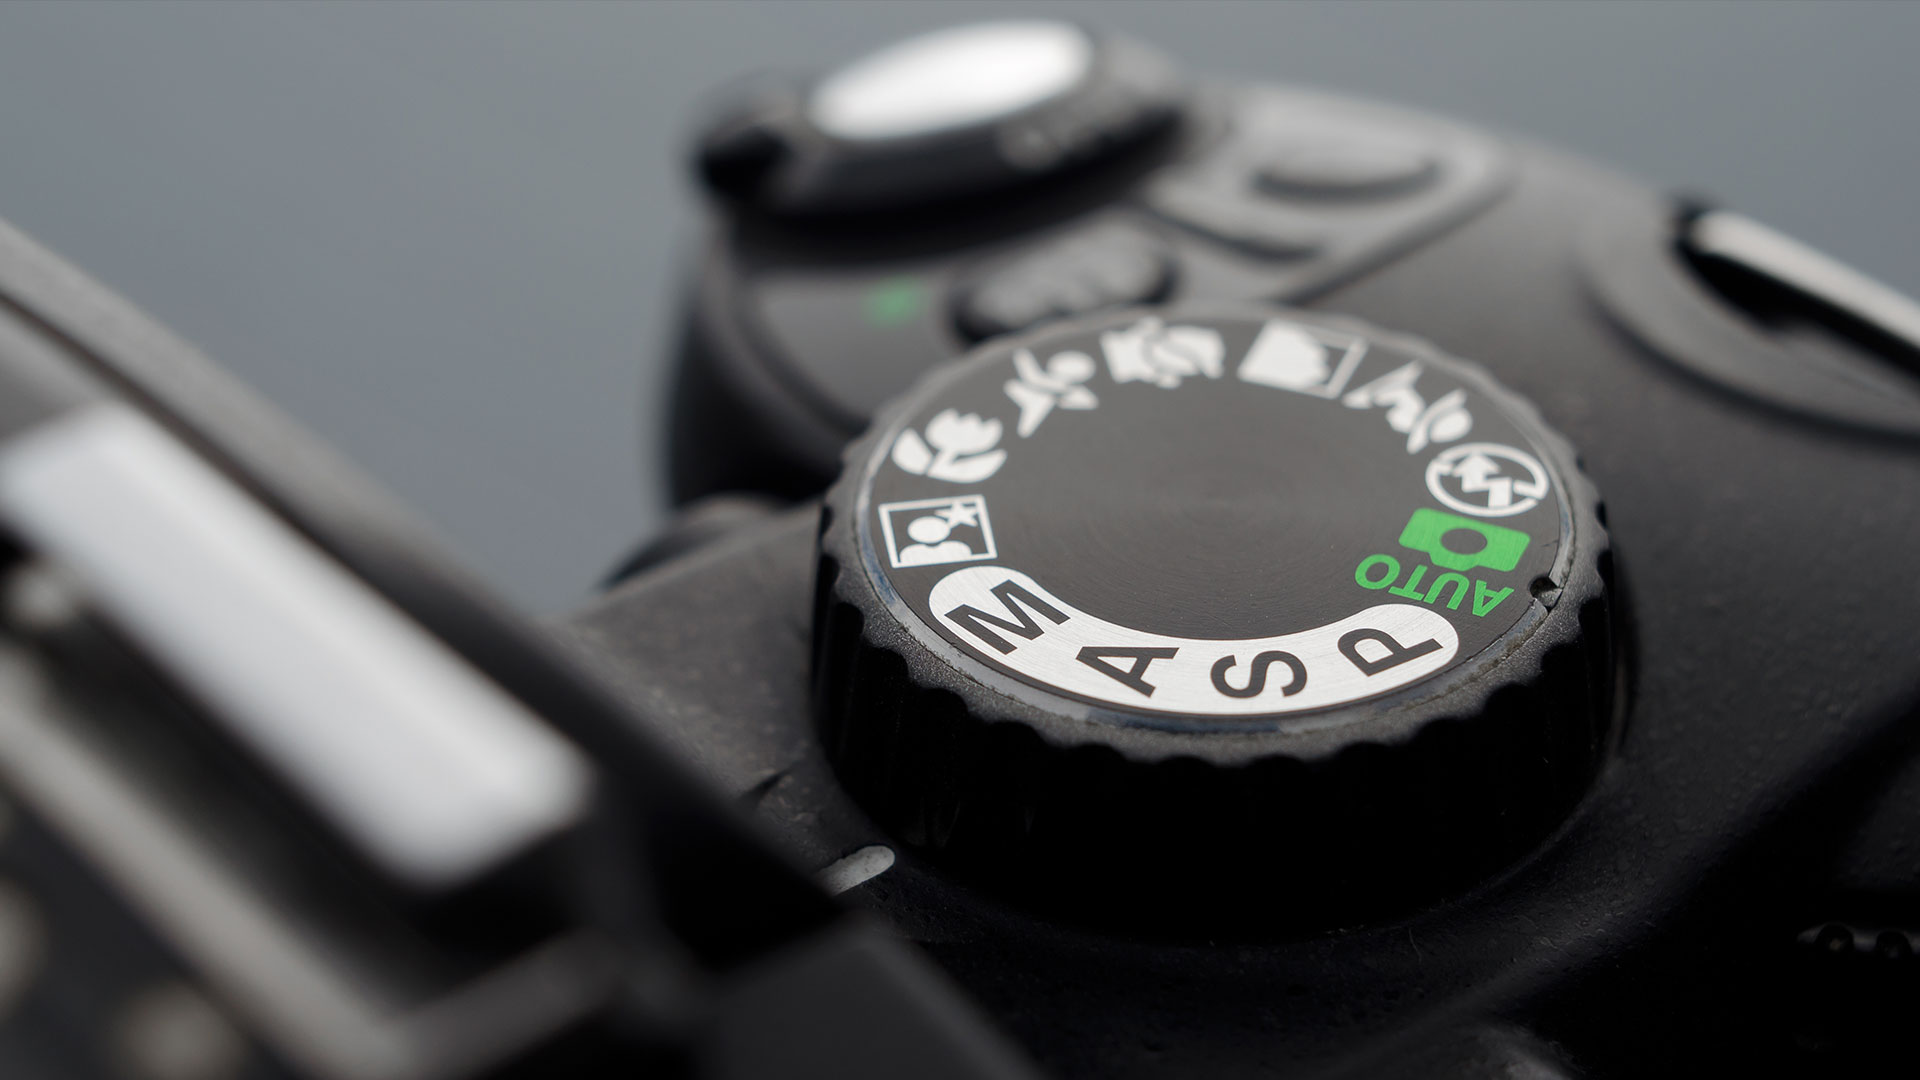 Getting started with your new camera: A for Aperture Priority | Photofocus